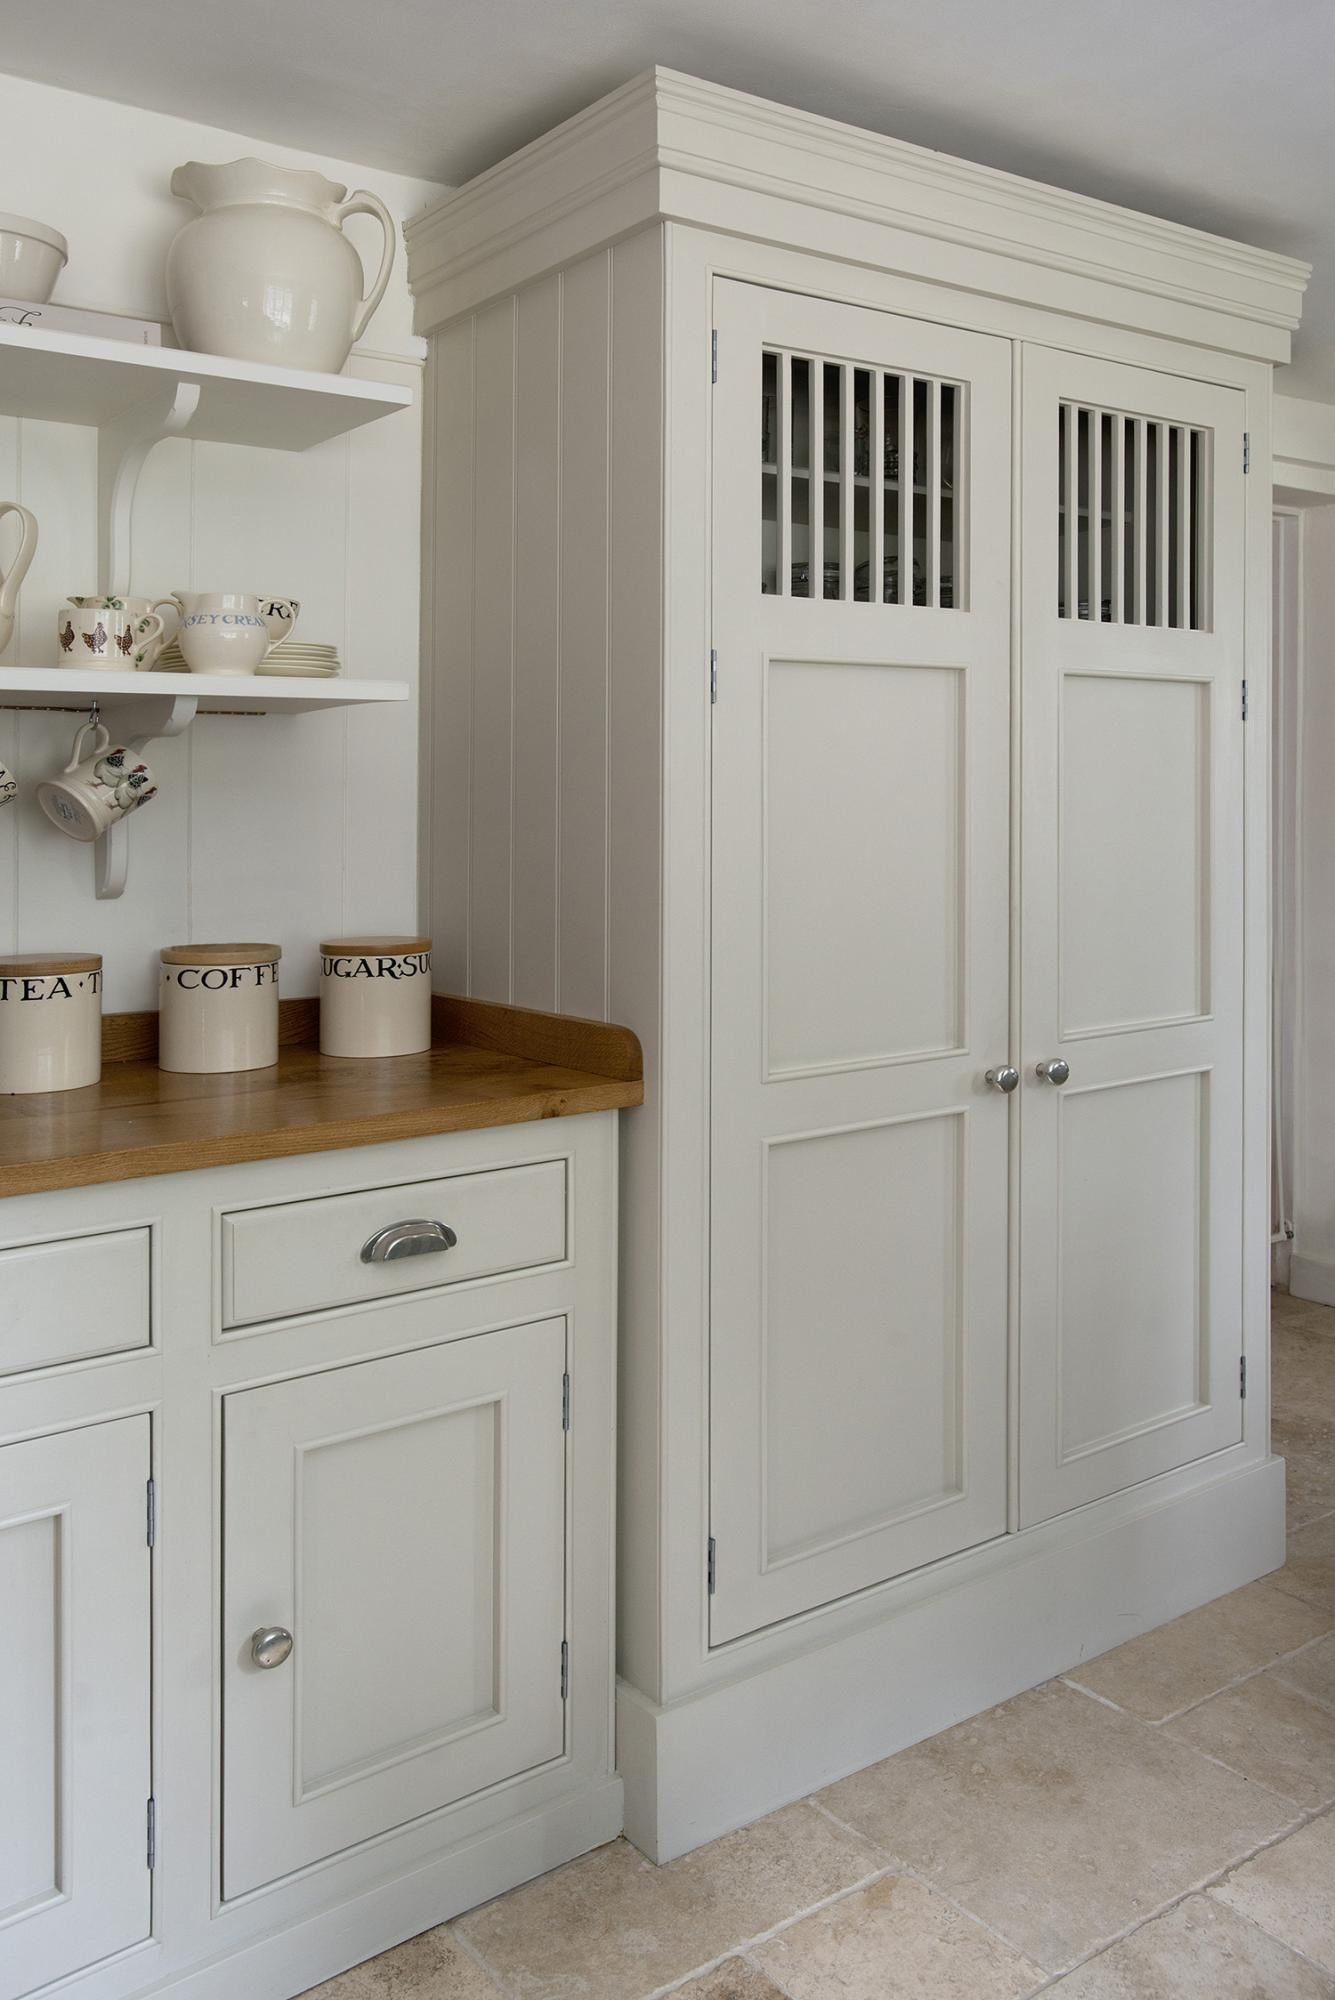 Best Farmhouse Kitchens For Sussex Surrey The South East 640 x 480